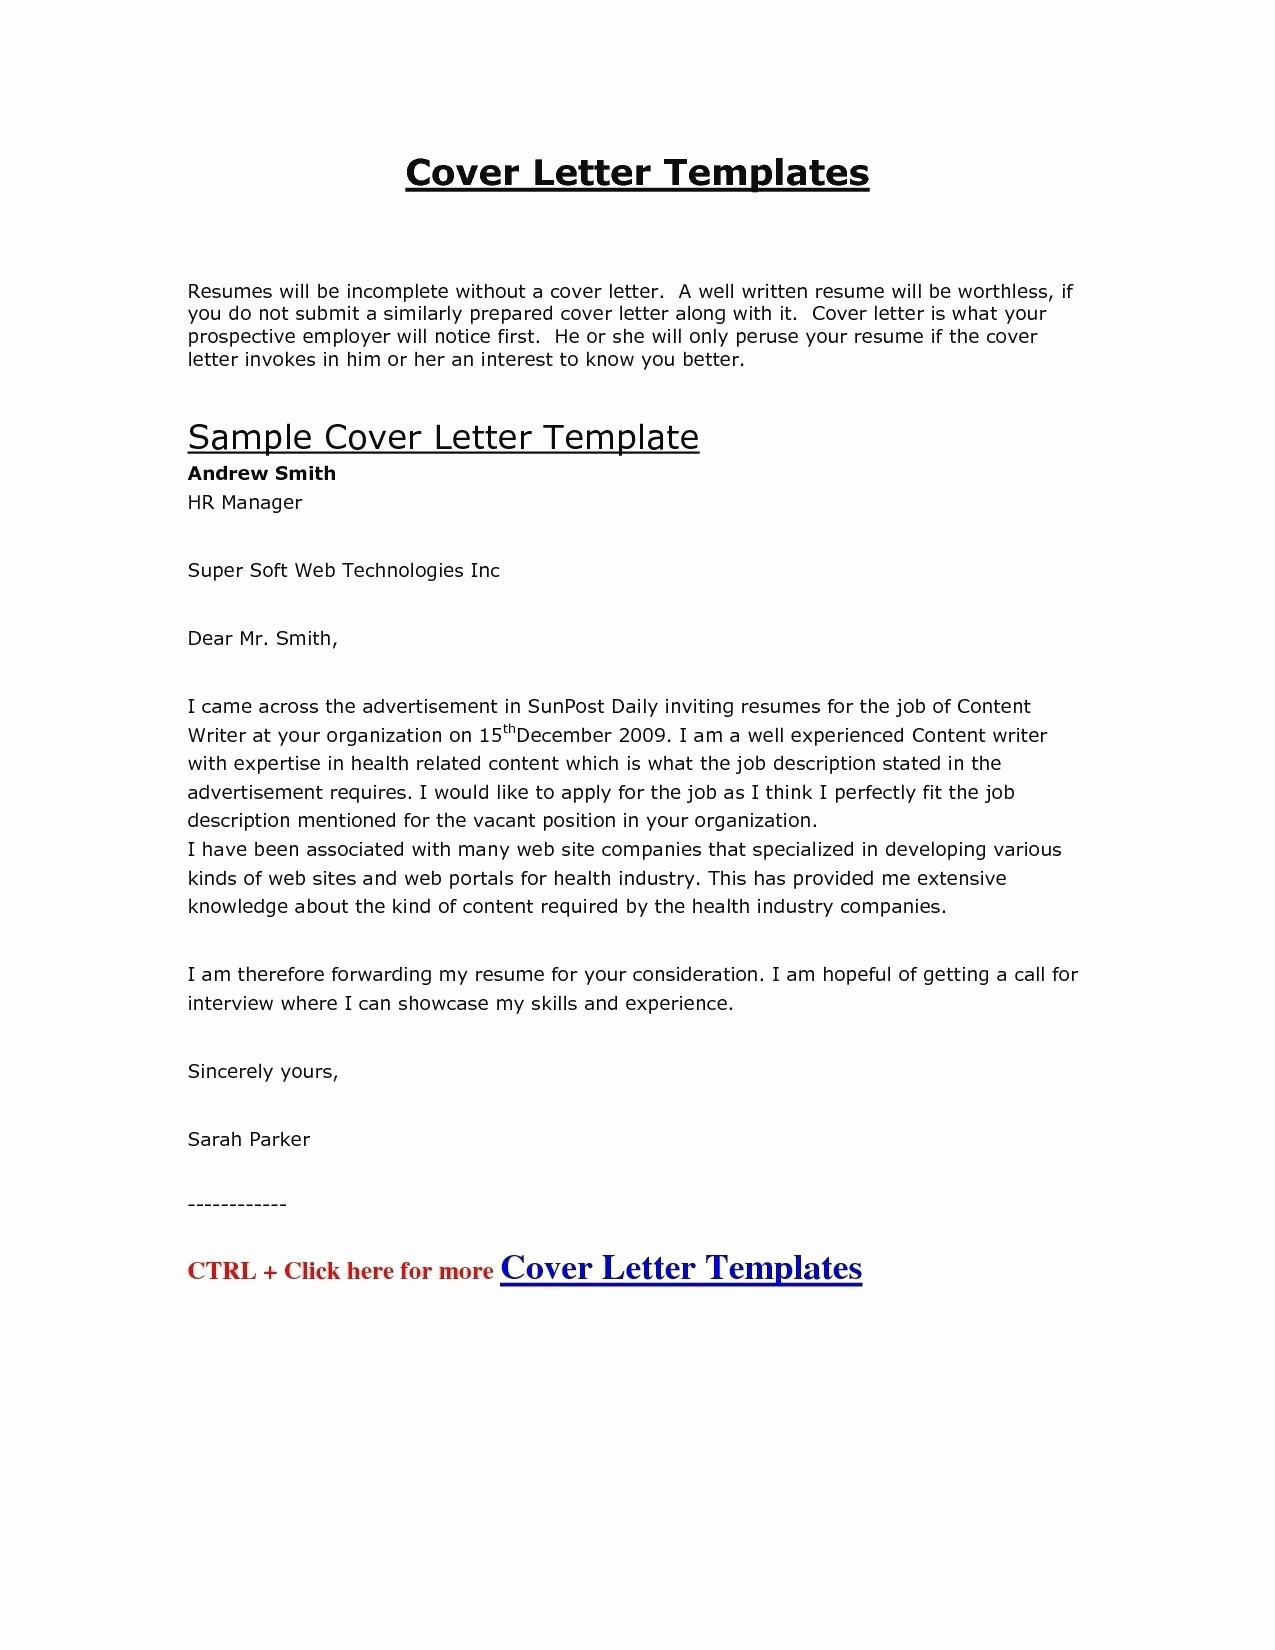 cover letter template for it job Collection-Samples Cover Letters For Jobs Valid It Cover Letter Template Lovely Job Fer Letter Template Us Copy Od 18-j